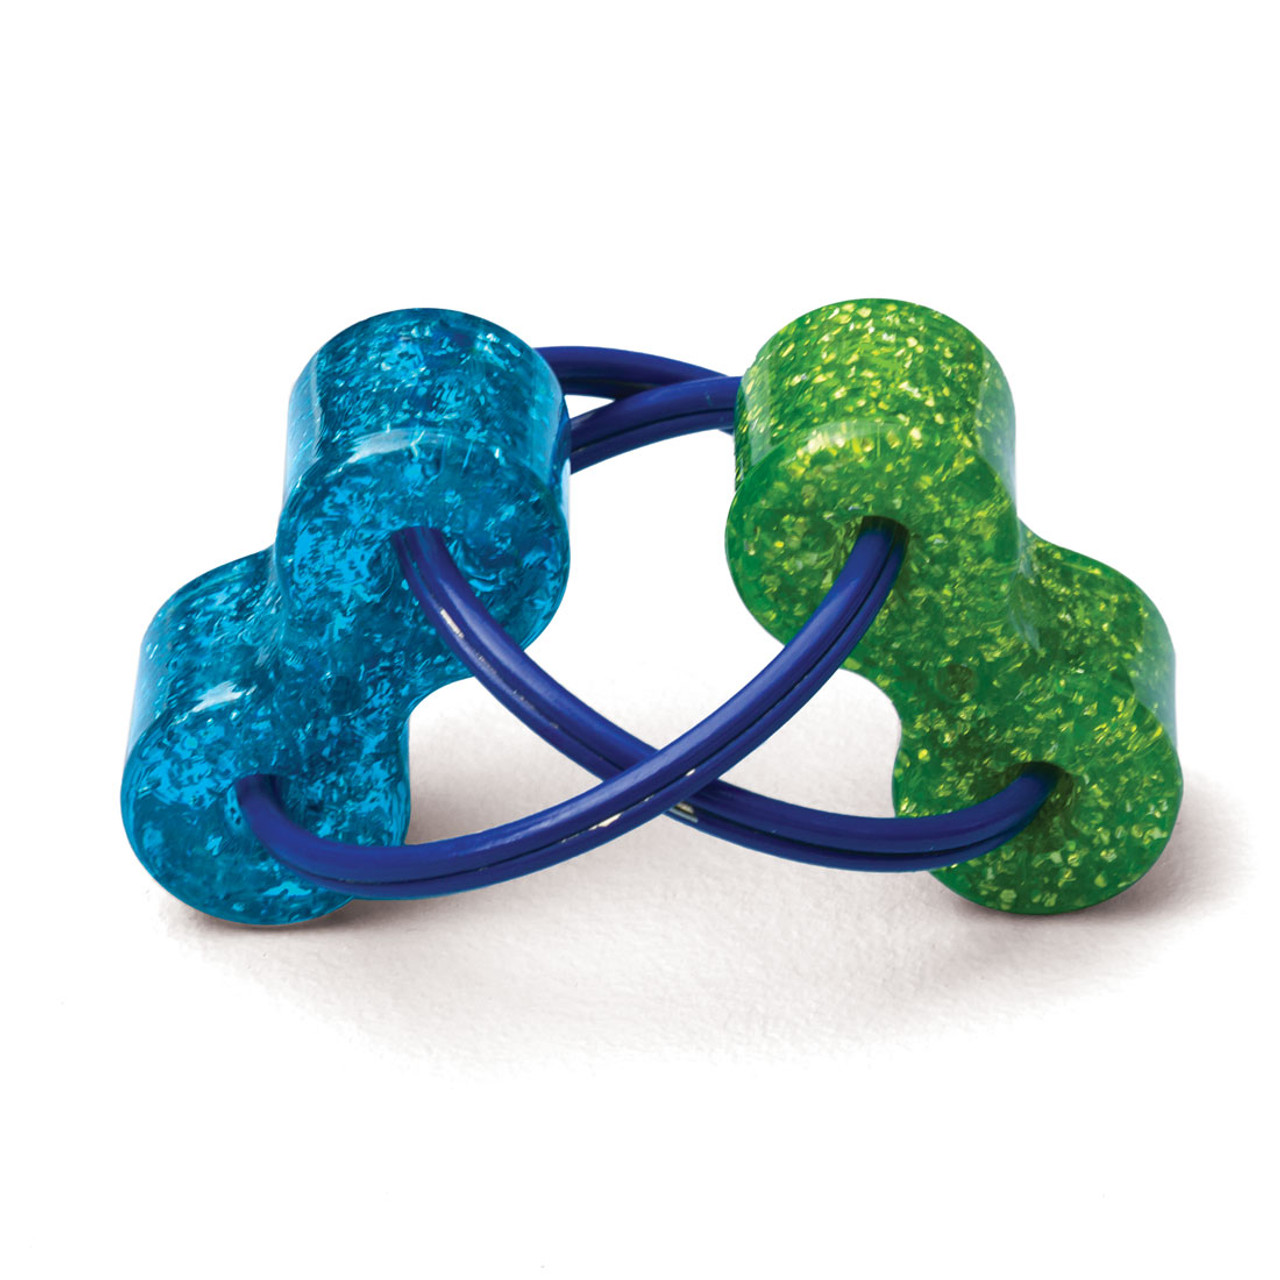 Loopeez;  blue and green